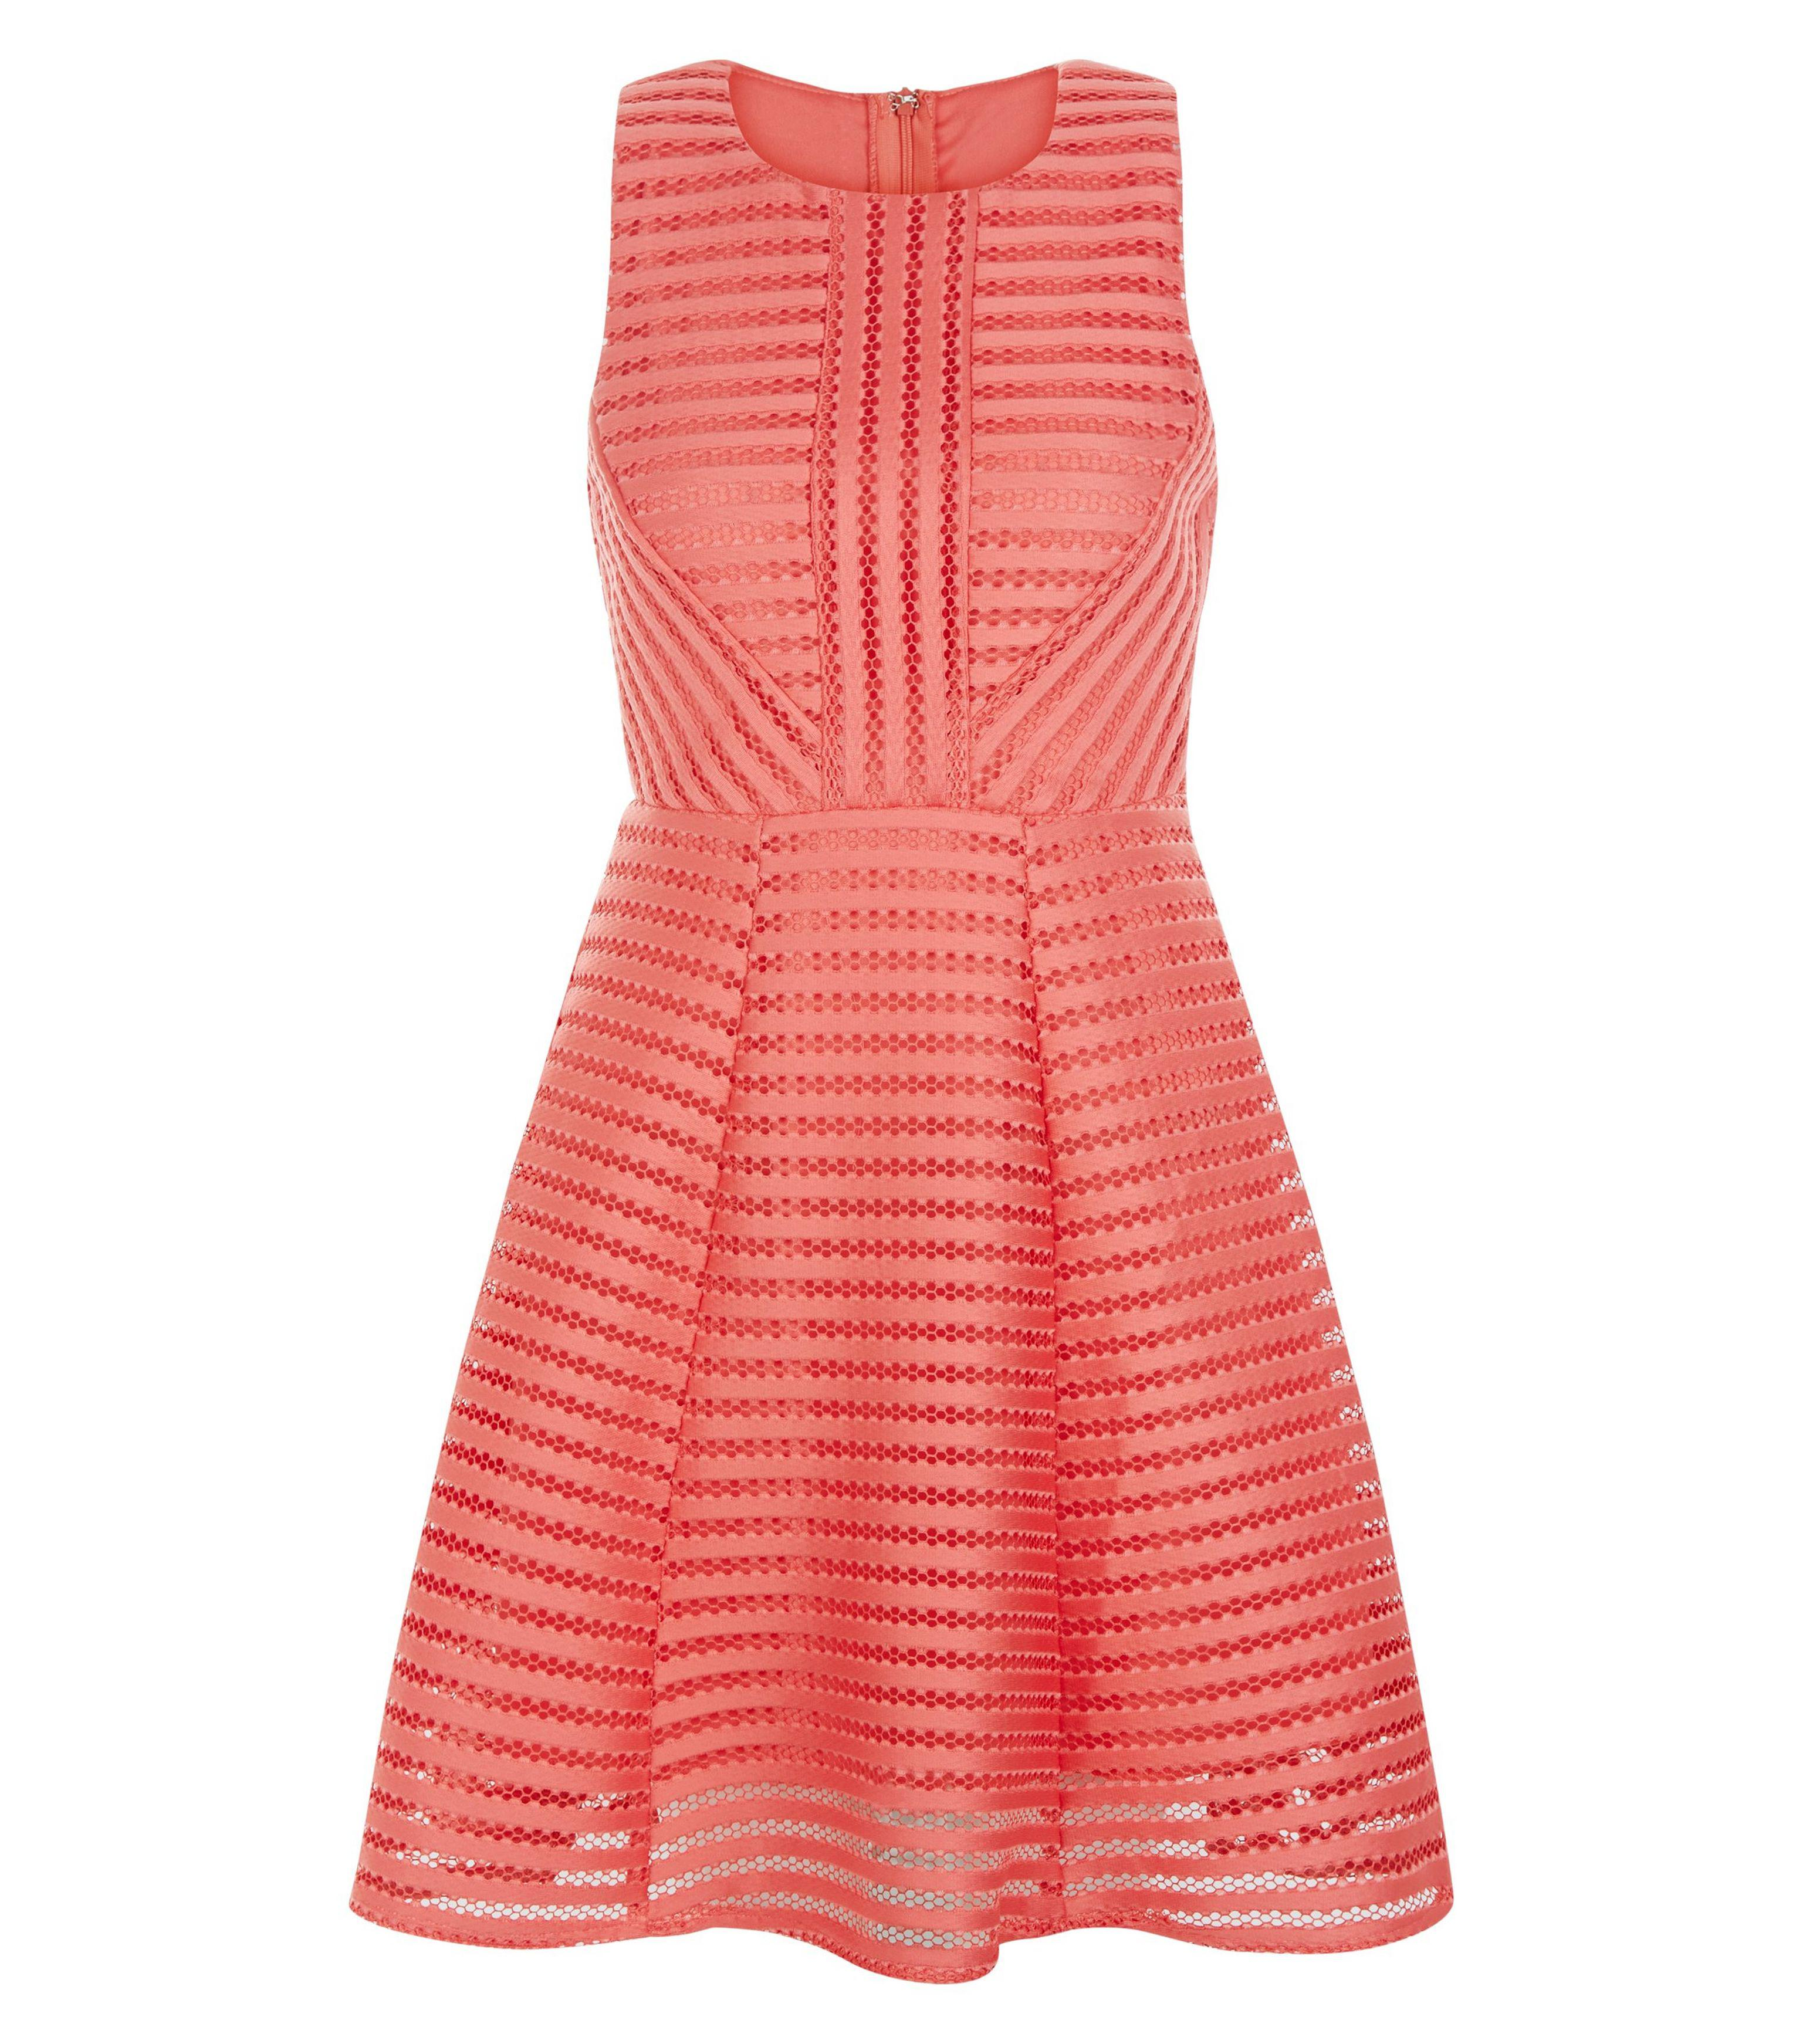 8e2aa411c045 Ax Paris Coral Ladder Skater Dress in Pink - Lyst